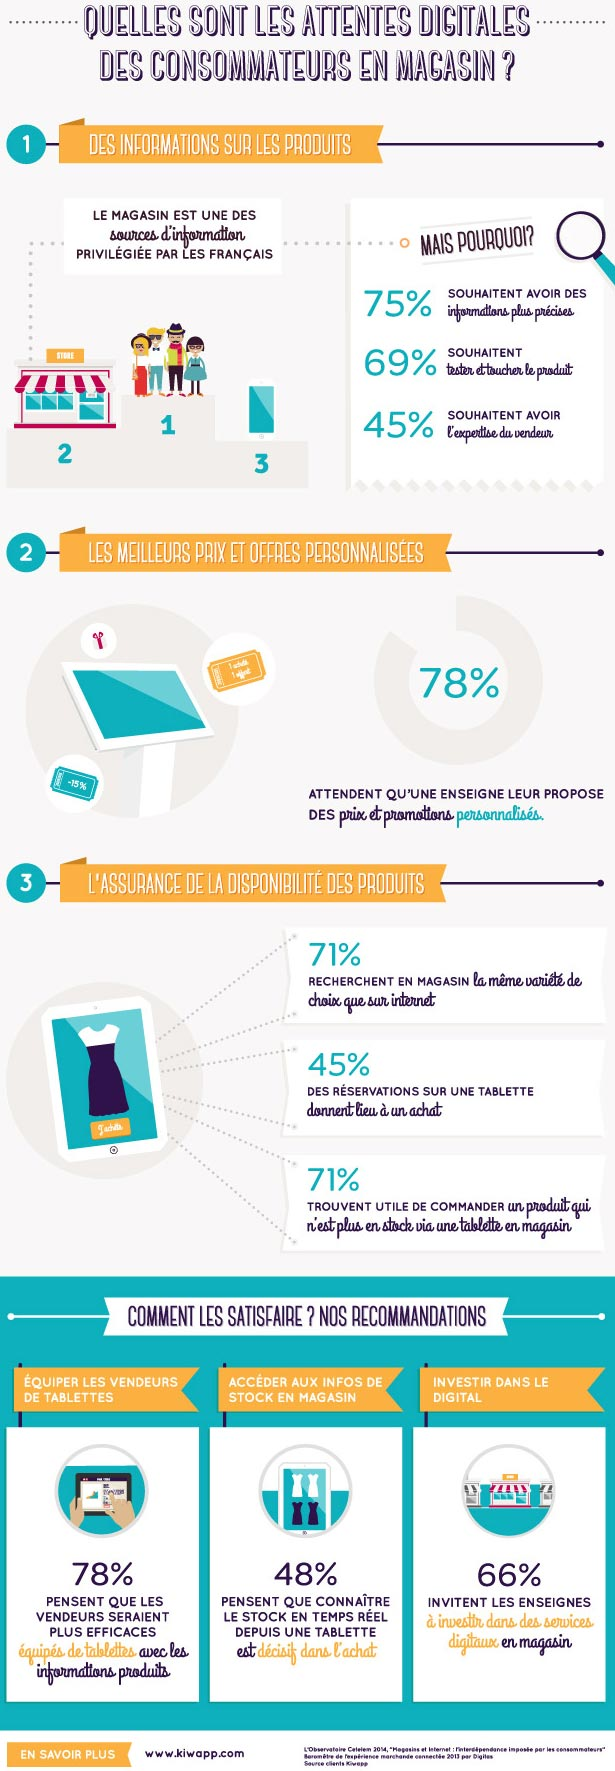 infographie-attentes-digitales-en-point-de-vente